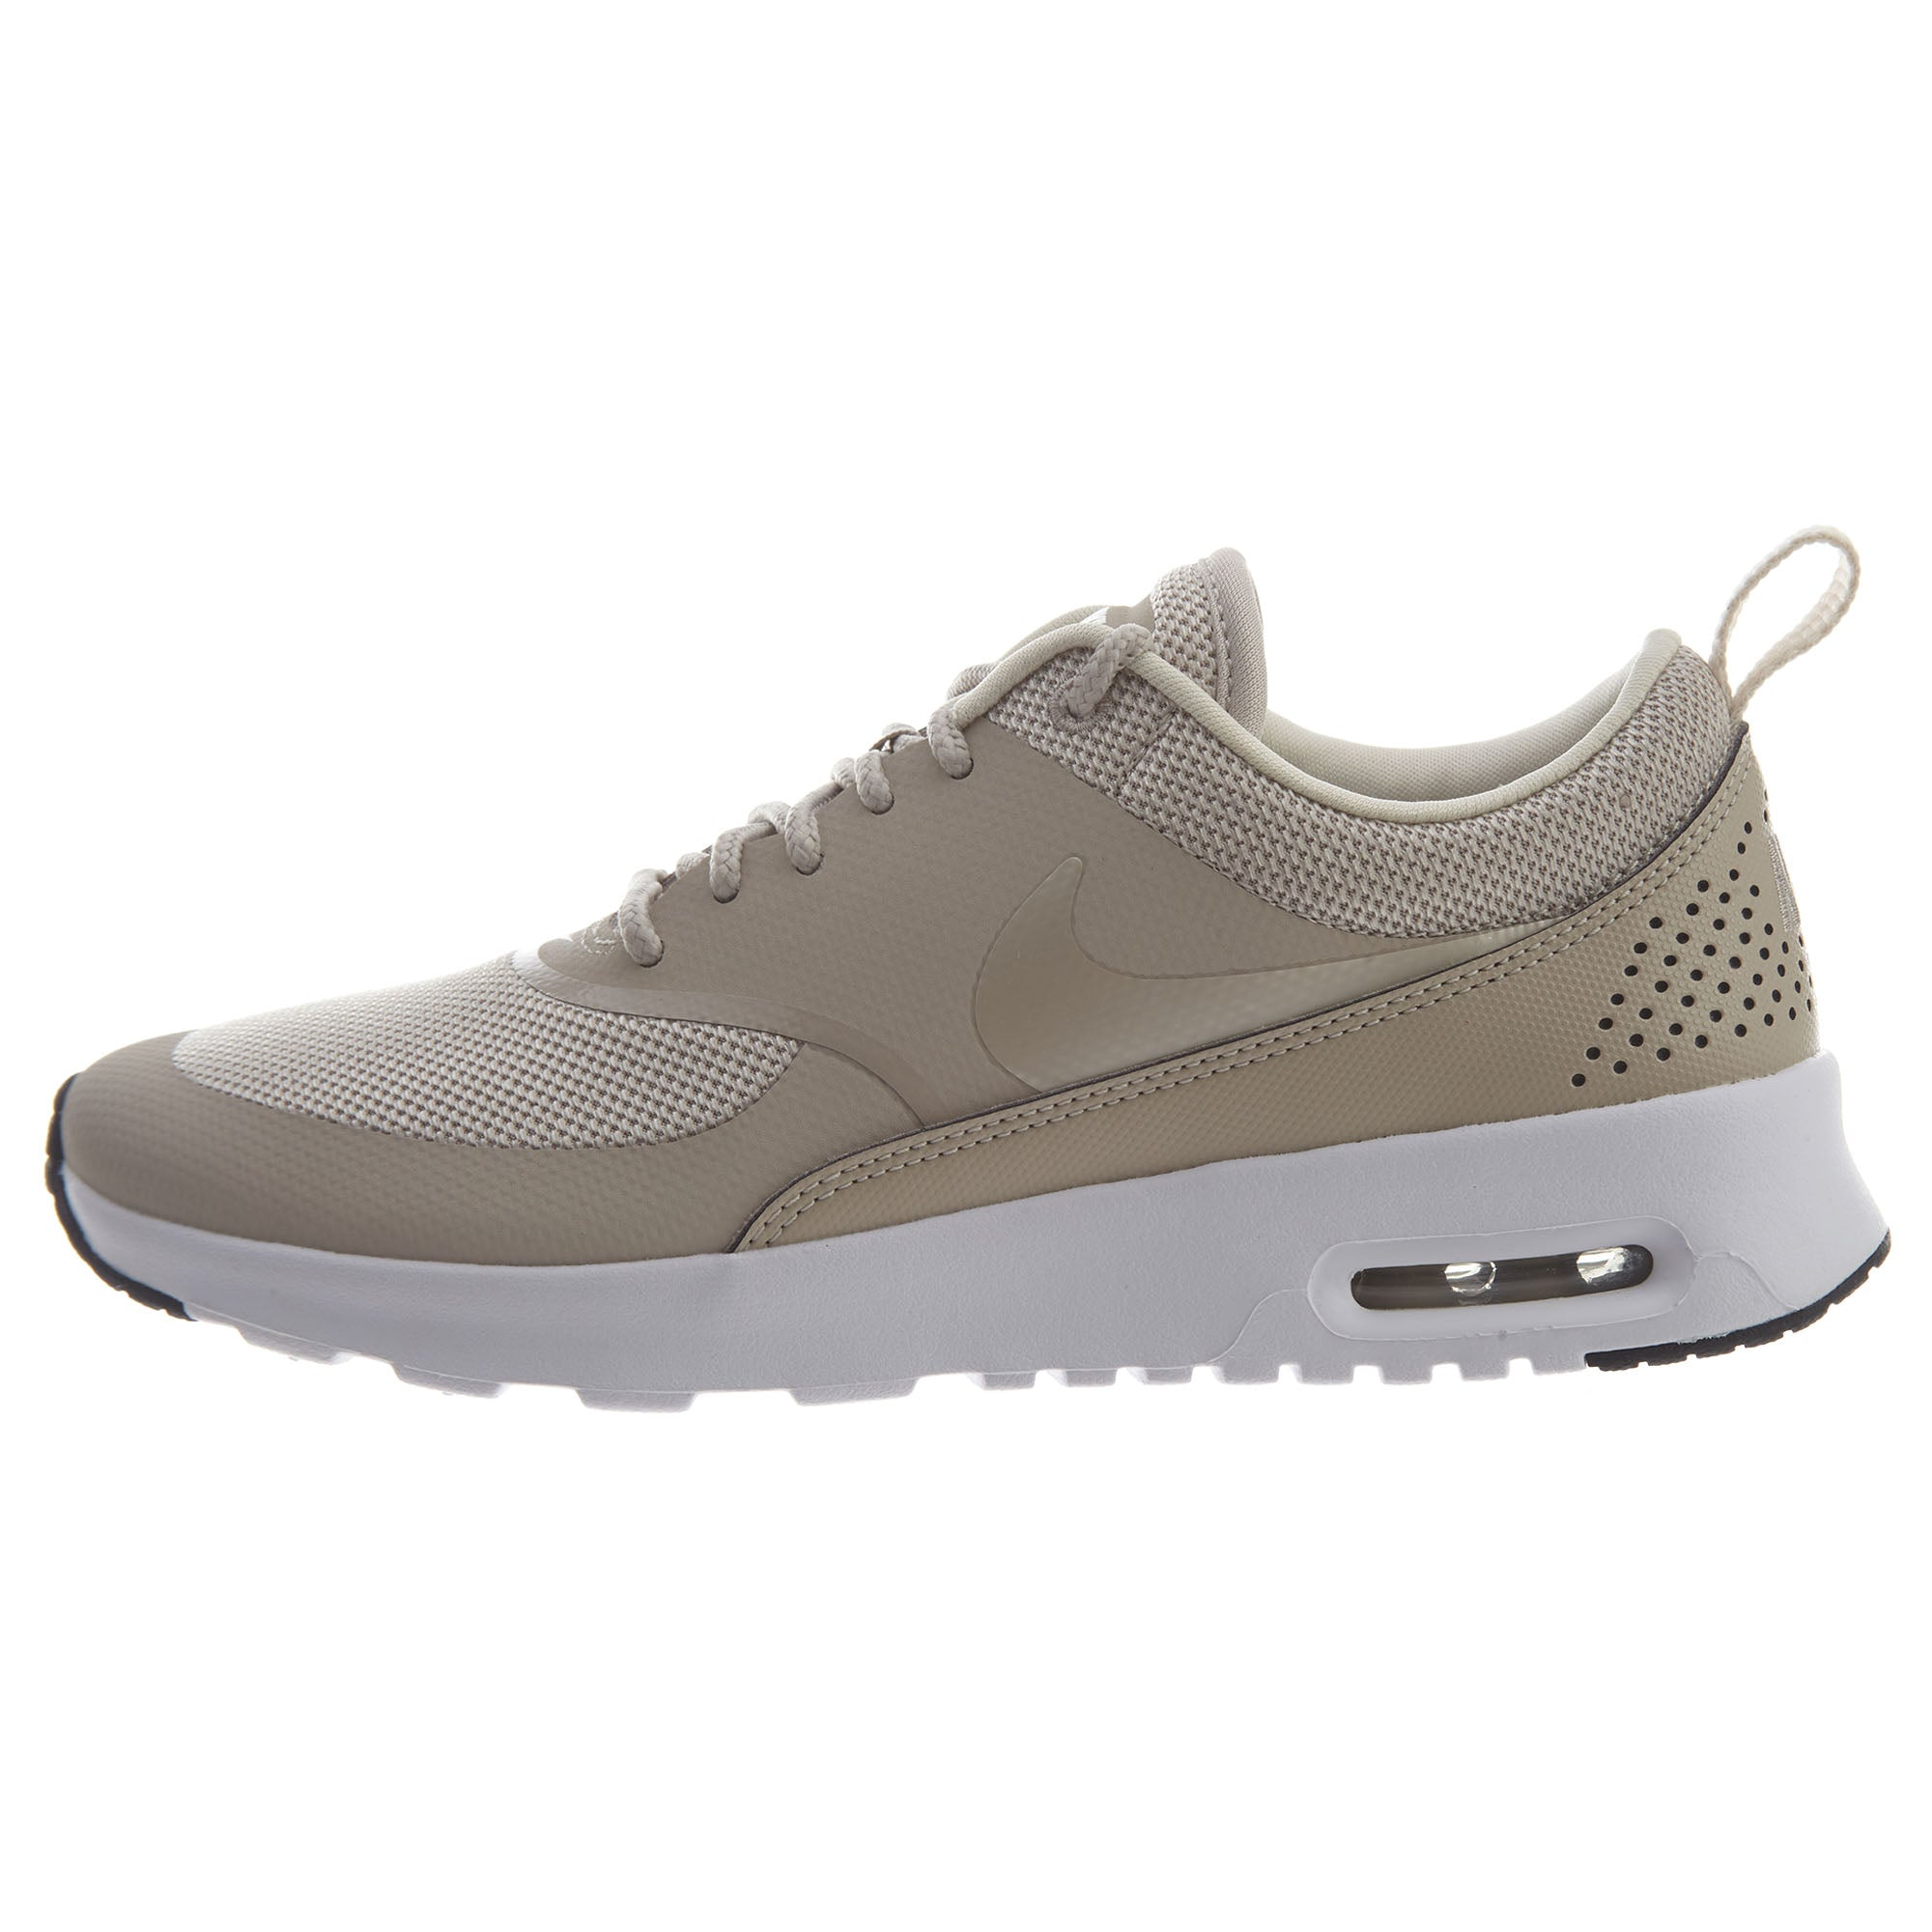 new arrival d1ca2 3d818 Nike Air Max Thea Womens Style   599409-205 – talkmoney730